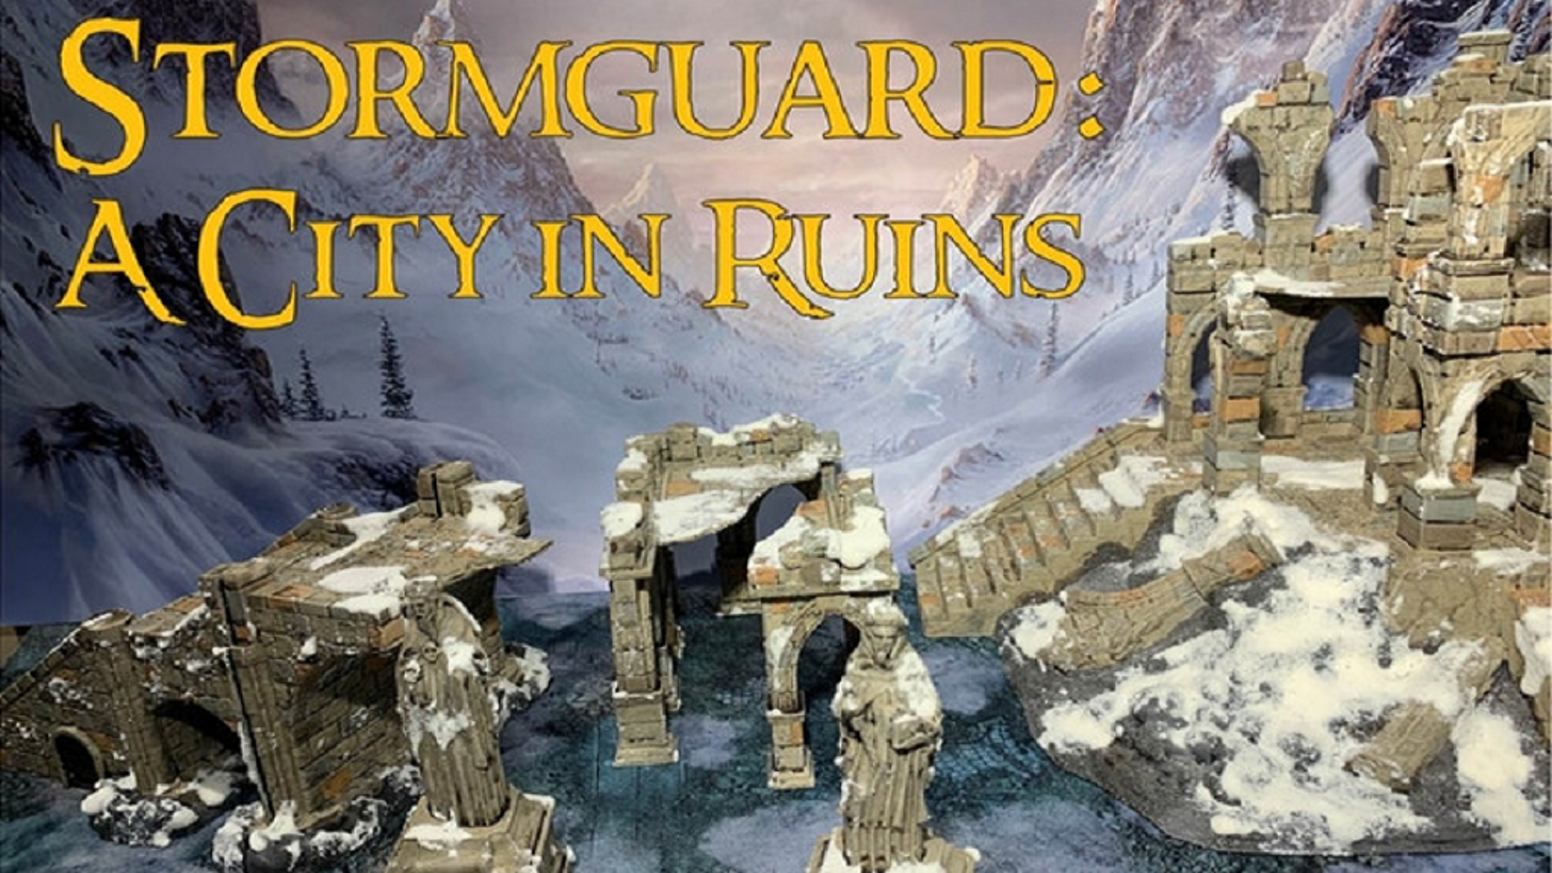 Stormguard is a set of highly detailed 3D printable fantasy ruins (STL files)  featuring dragonbite technology for your home printer.